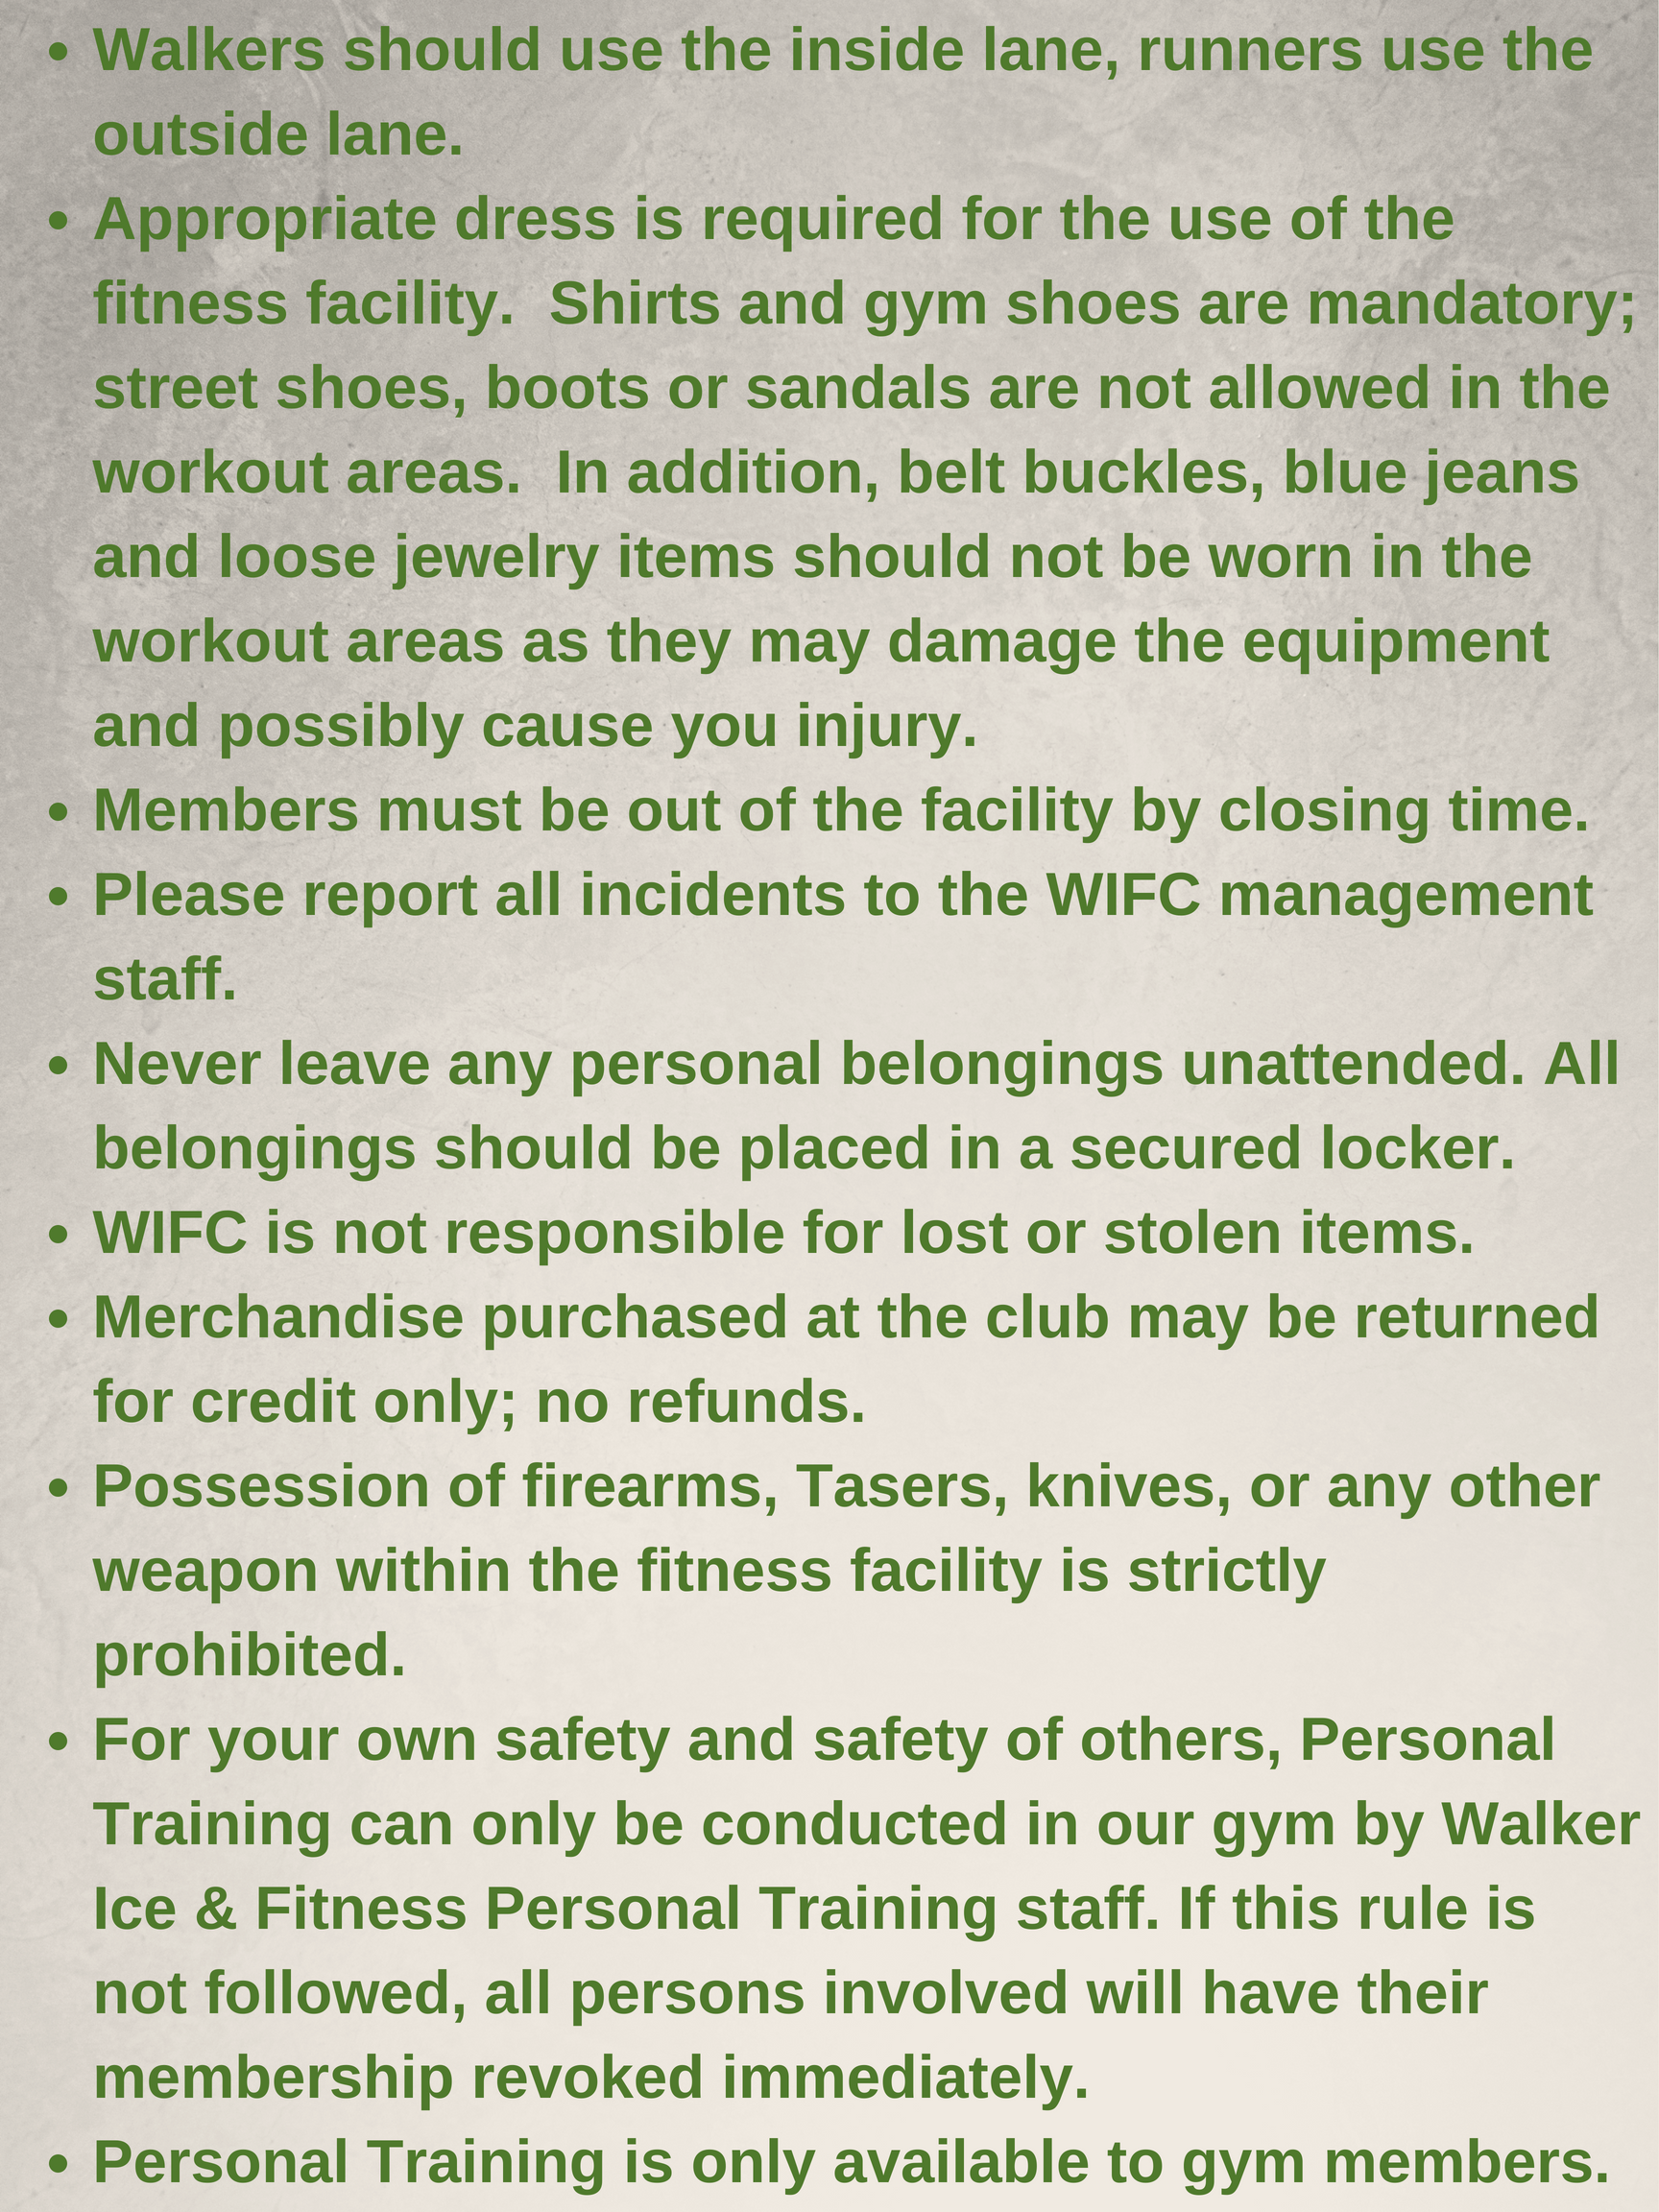 fitness rules page 2 typos fixed